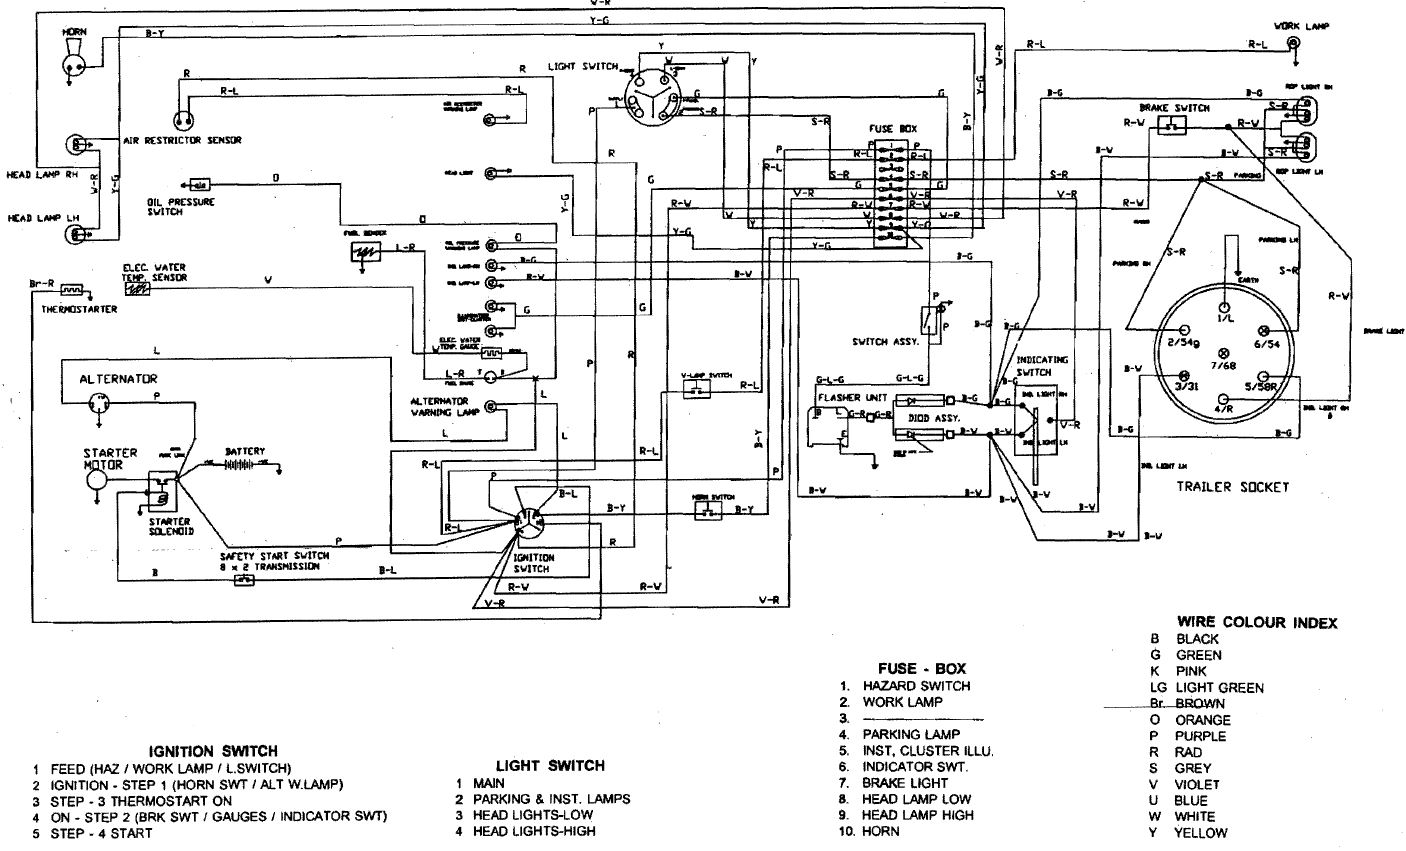 hight resolution of ignition switch wiring diagram d 1500 kubota engine diagram